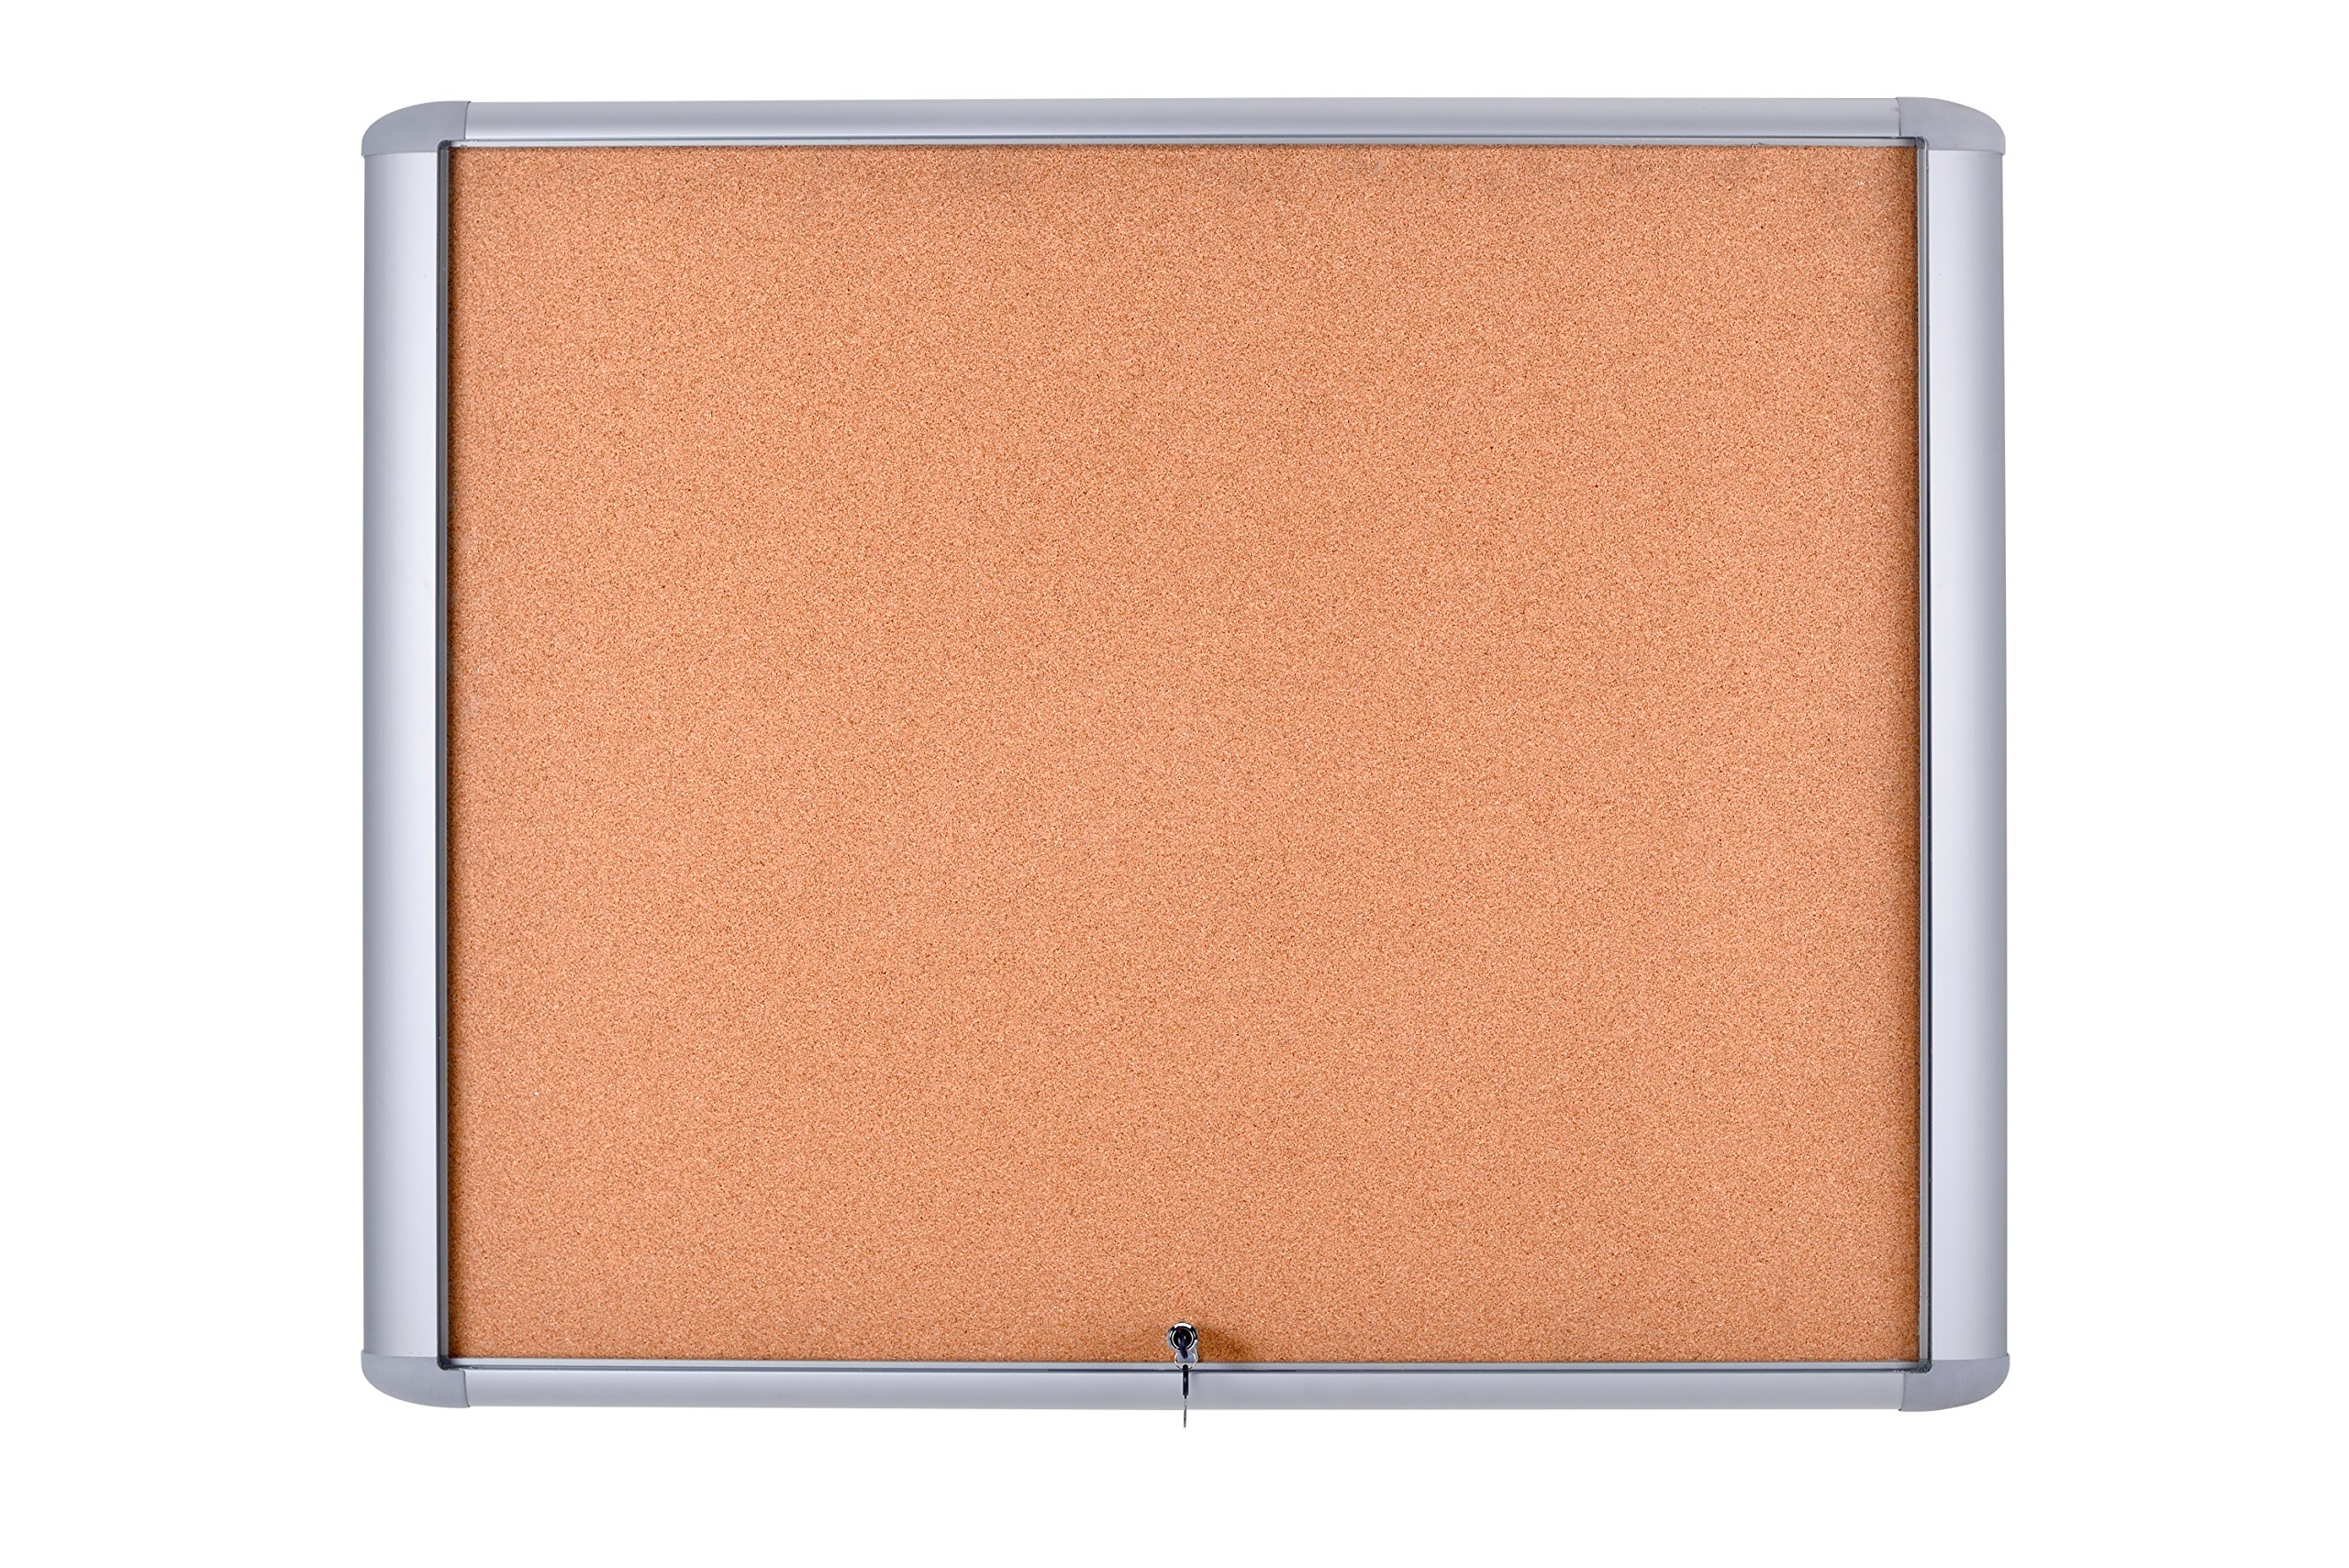 MasterVision Enclosed Bulletin Board Outdoor Water resistant, Cork Surface, 30'' x 26.5'' with Aluminum Frame